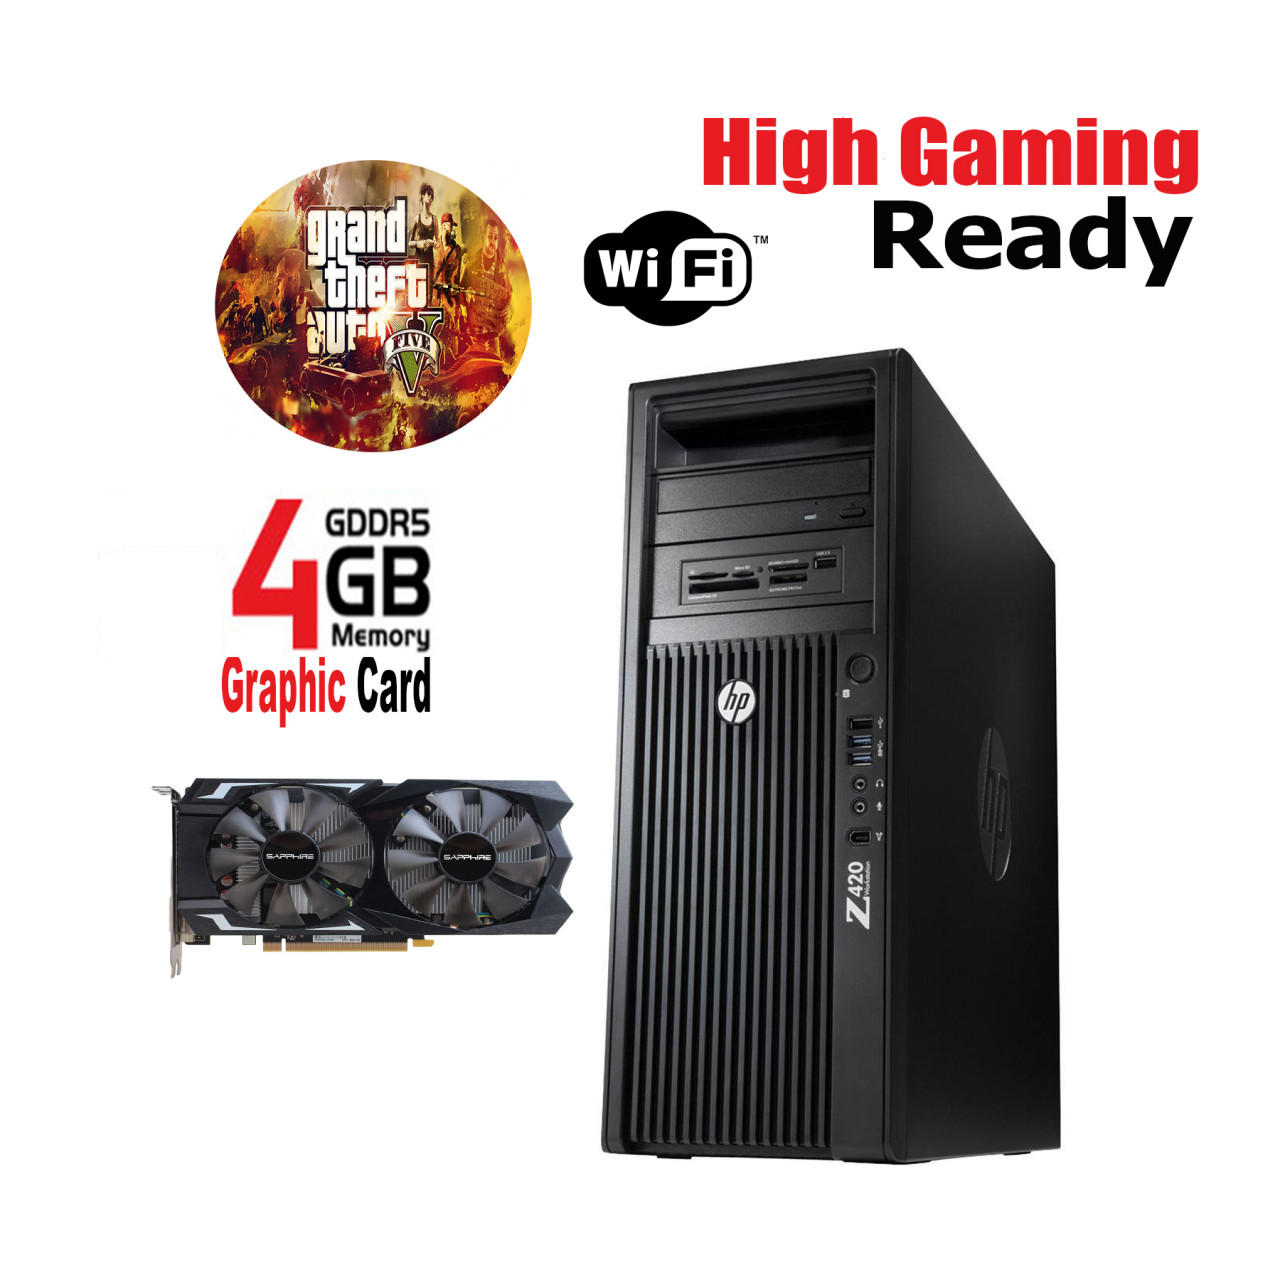 HP Z420 Gaming PC 8 Core E5-1650 8GB RAM 1TB Hard Drive Price in